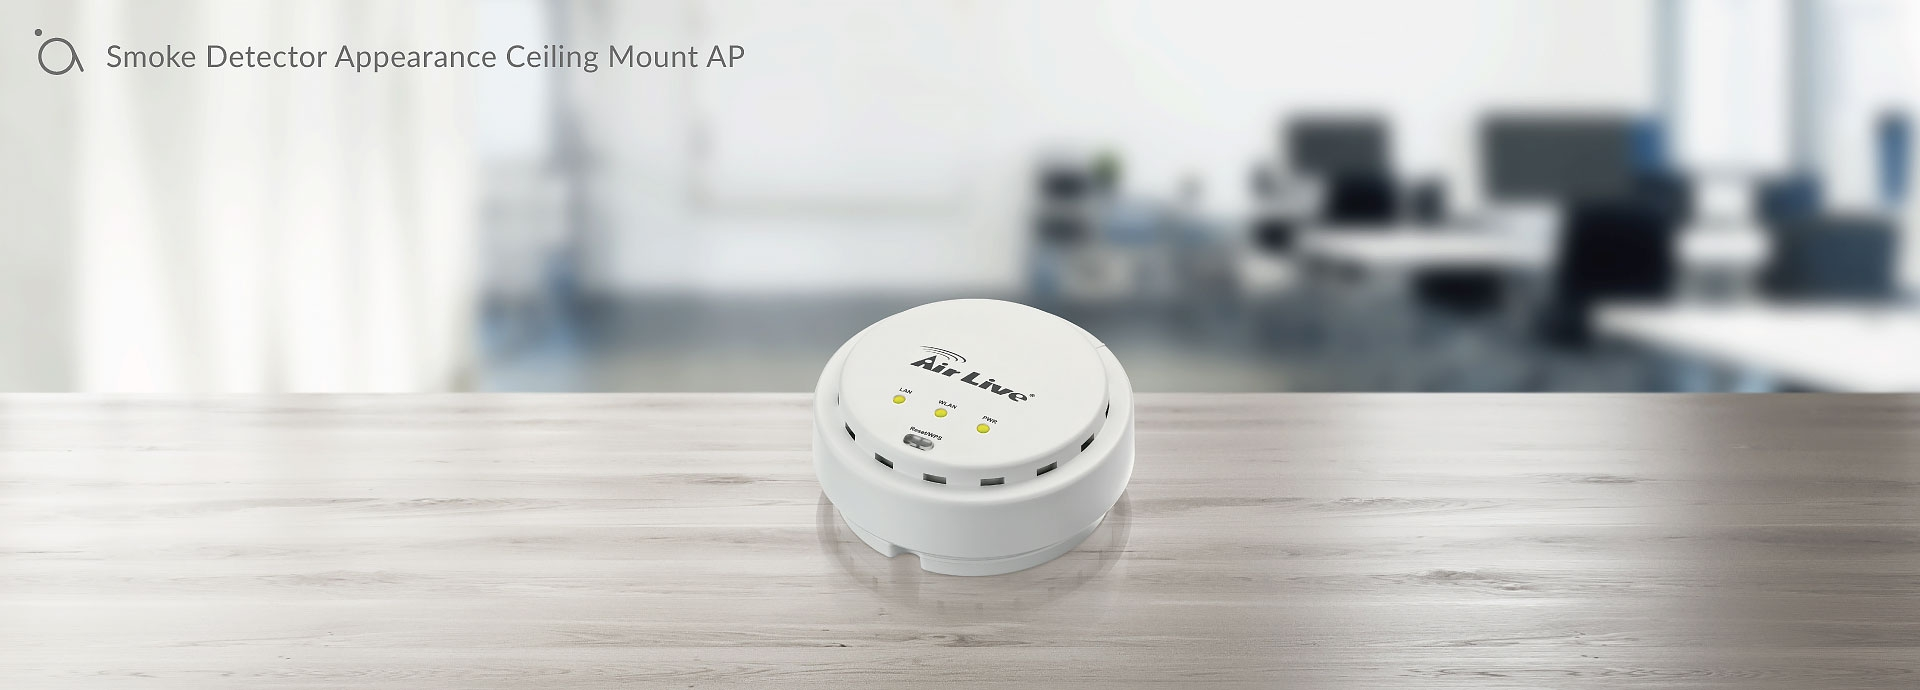 Smoke Detector Appearance Ceiling Mount AP